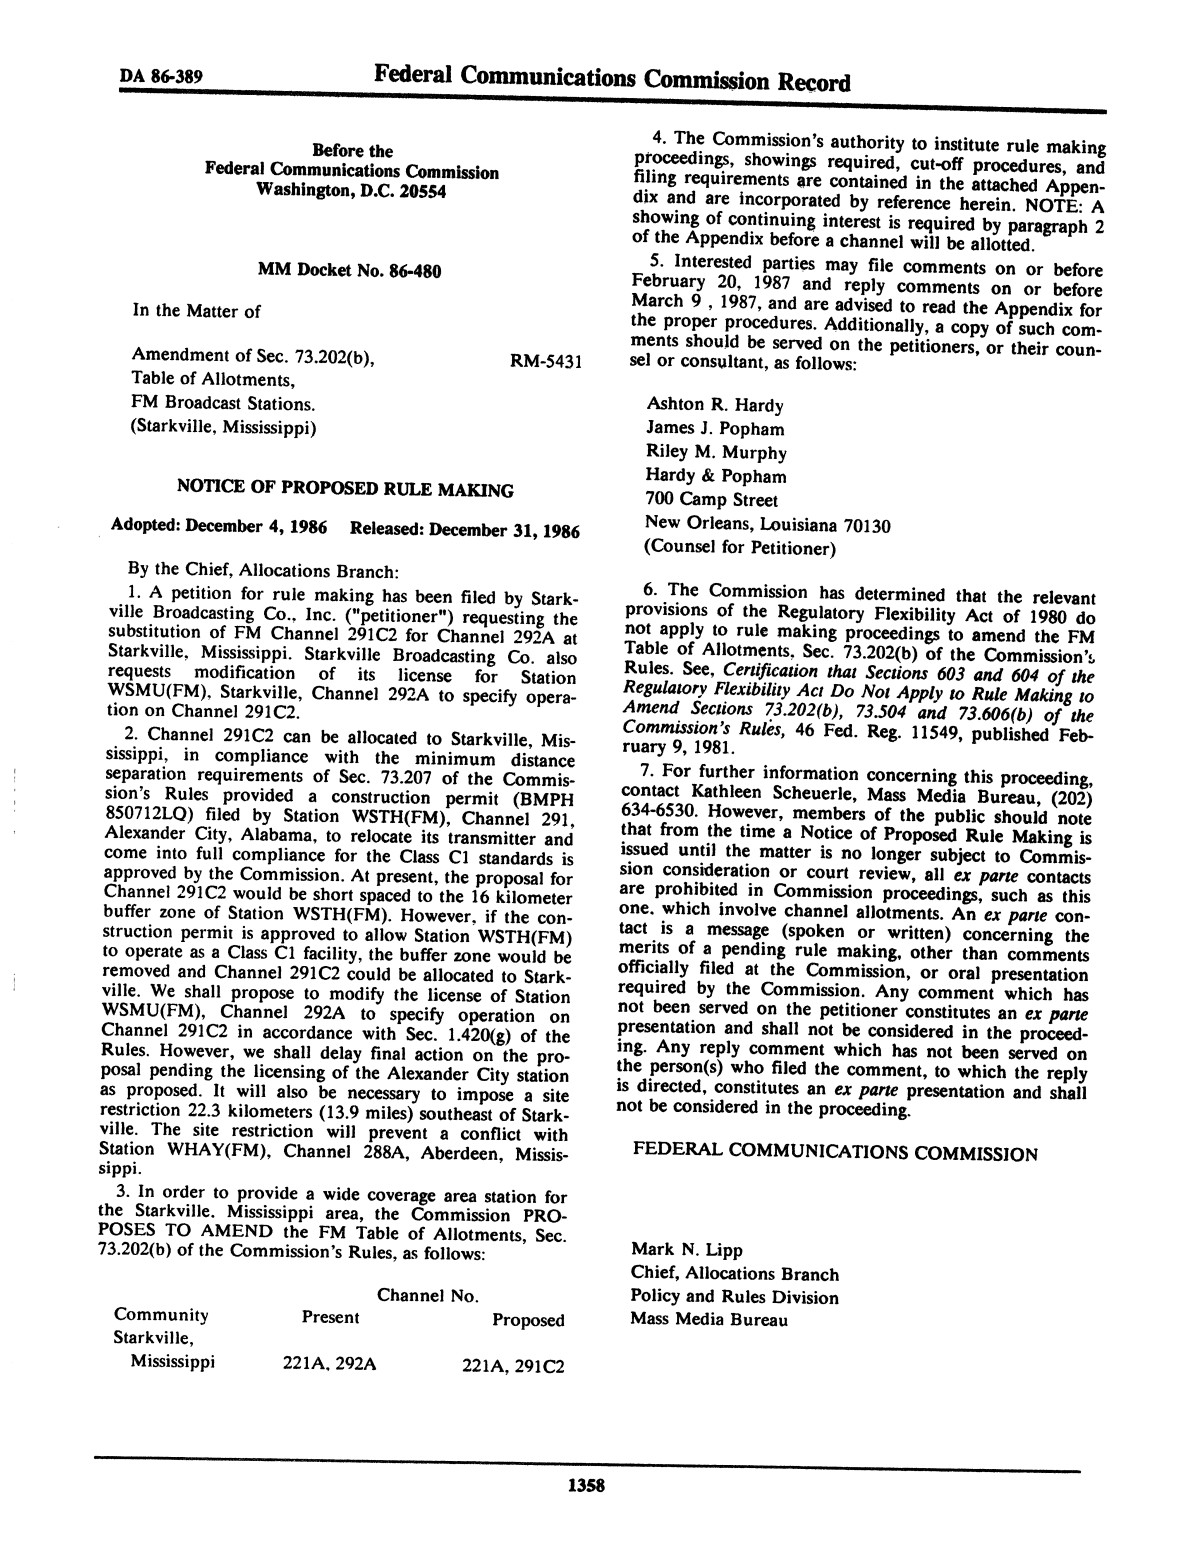 FCC Record, Volume 1, No. 7, Pages 1267 to 1368, December 22, 1986 - January 2, 1987                                                                                                      1358